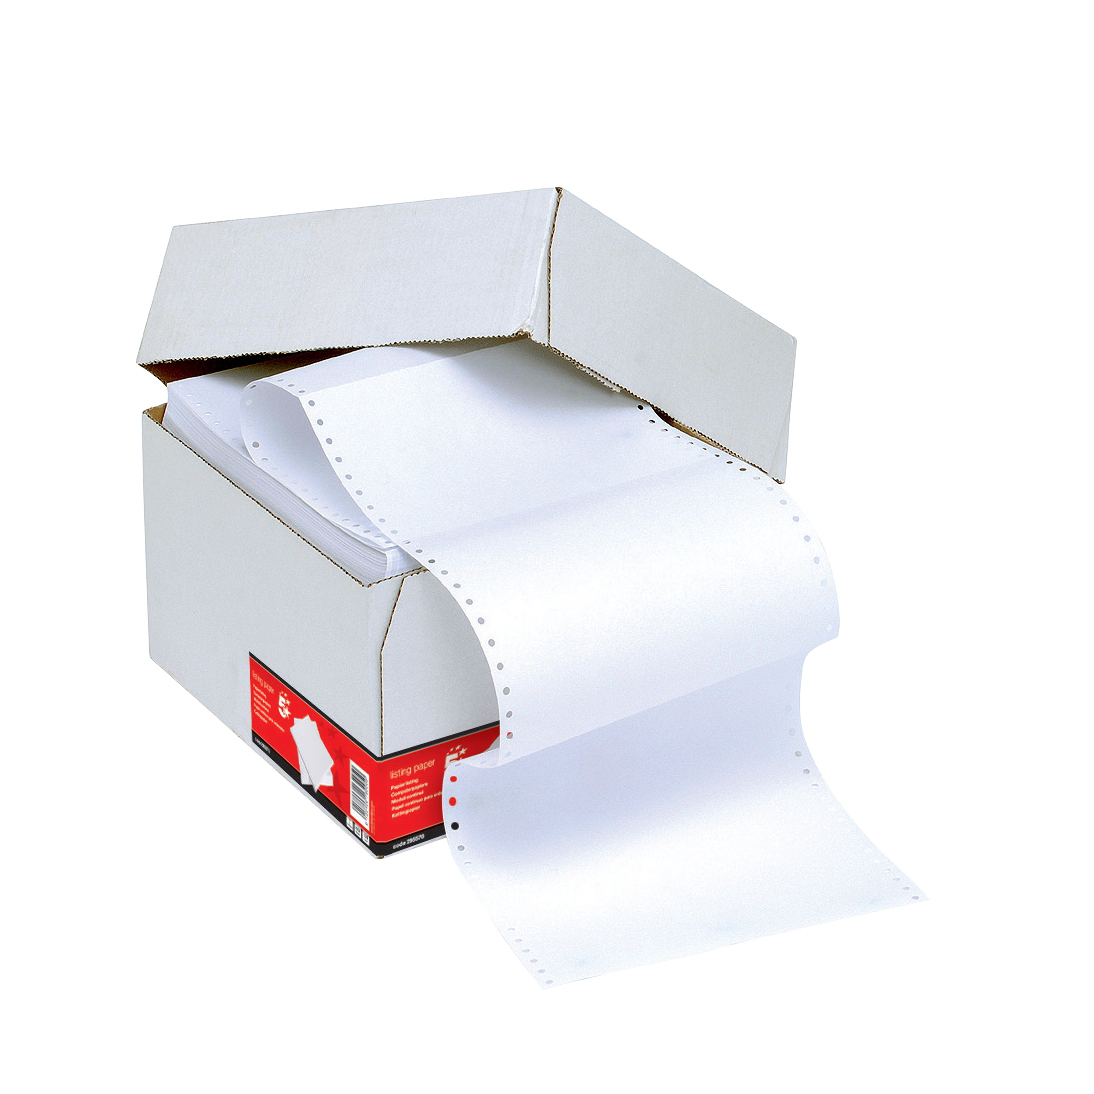 5 Star Office Listing Paper 1-Part 70gsm 11inchx389mm Ruled 2000 Sheets